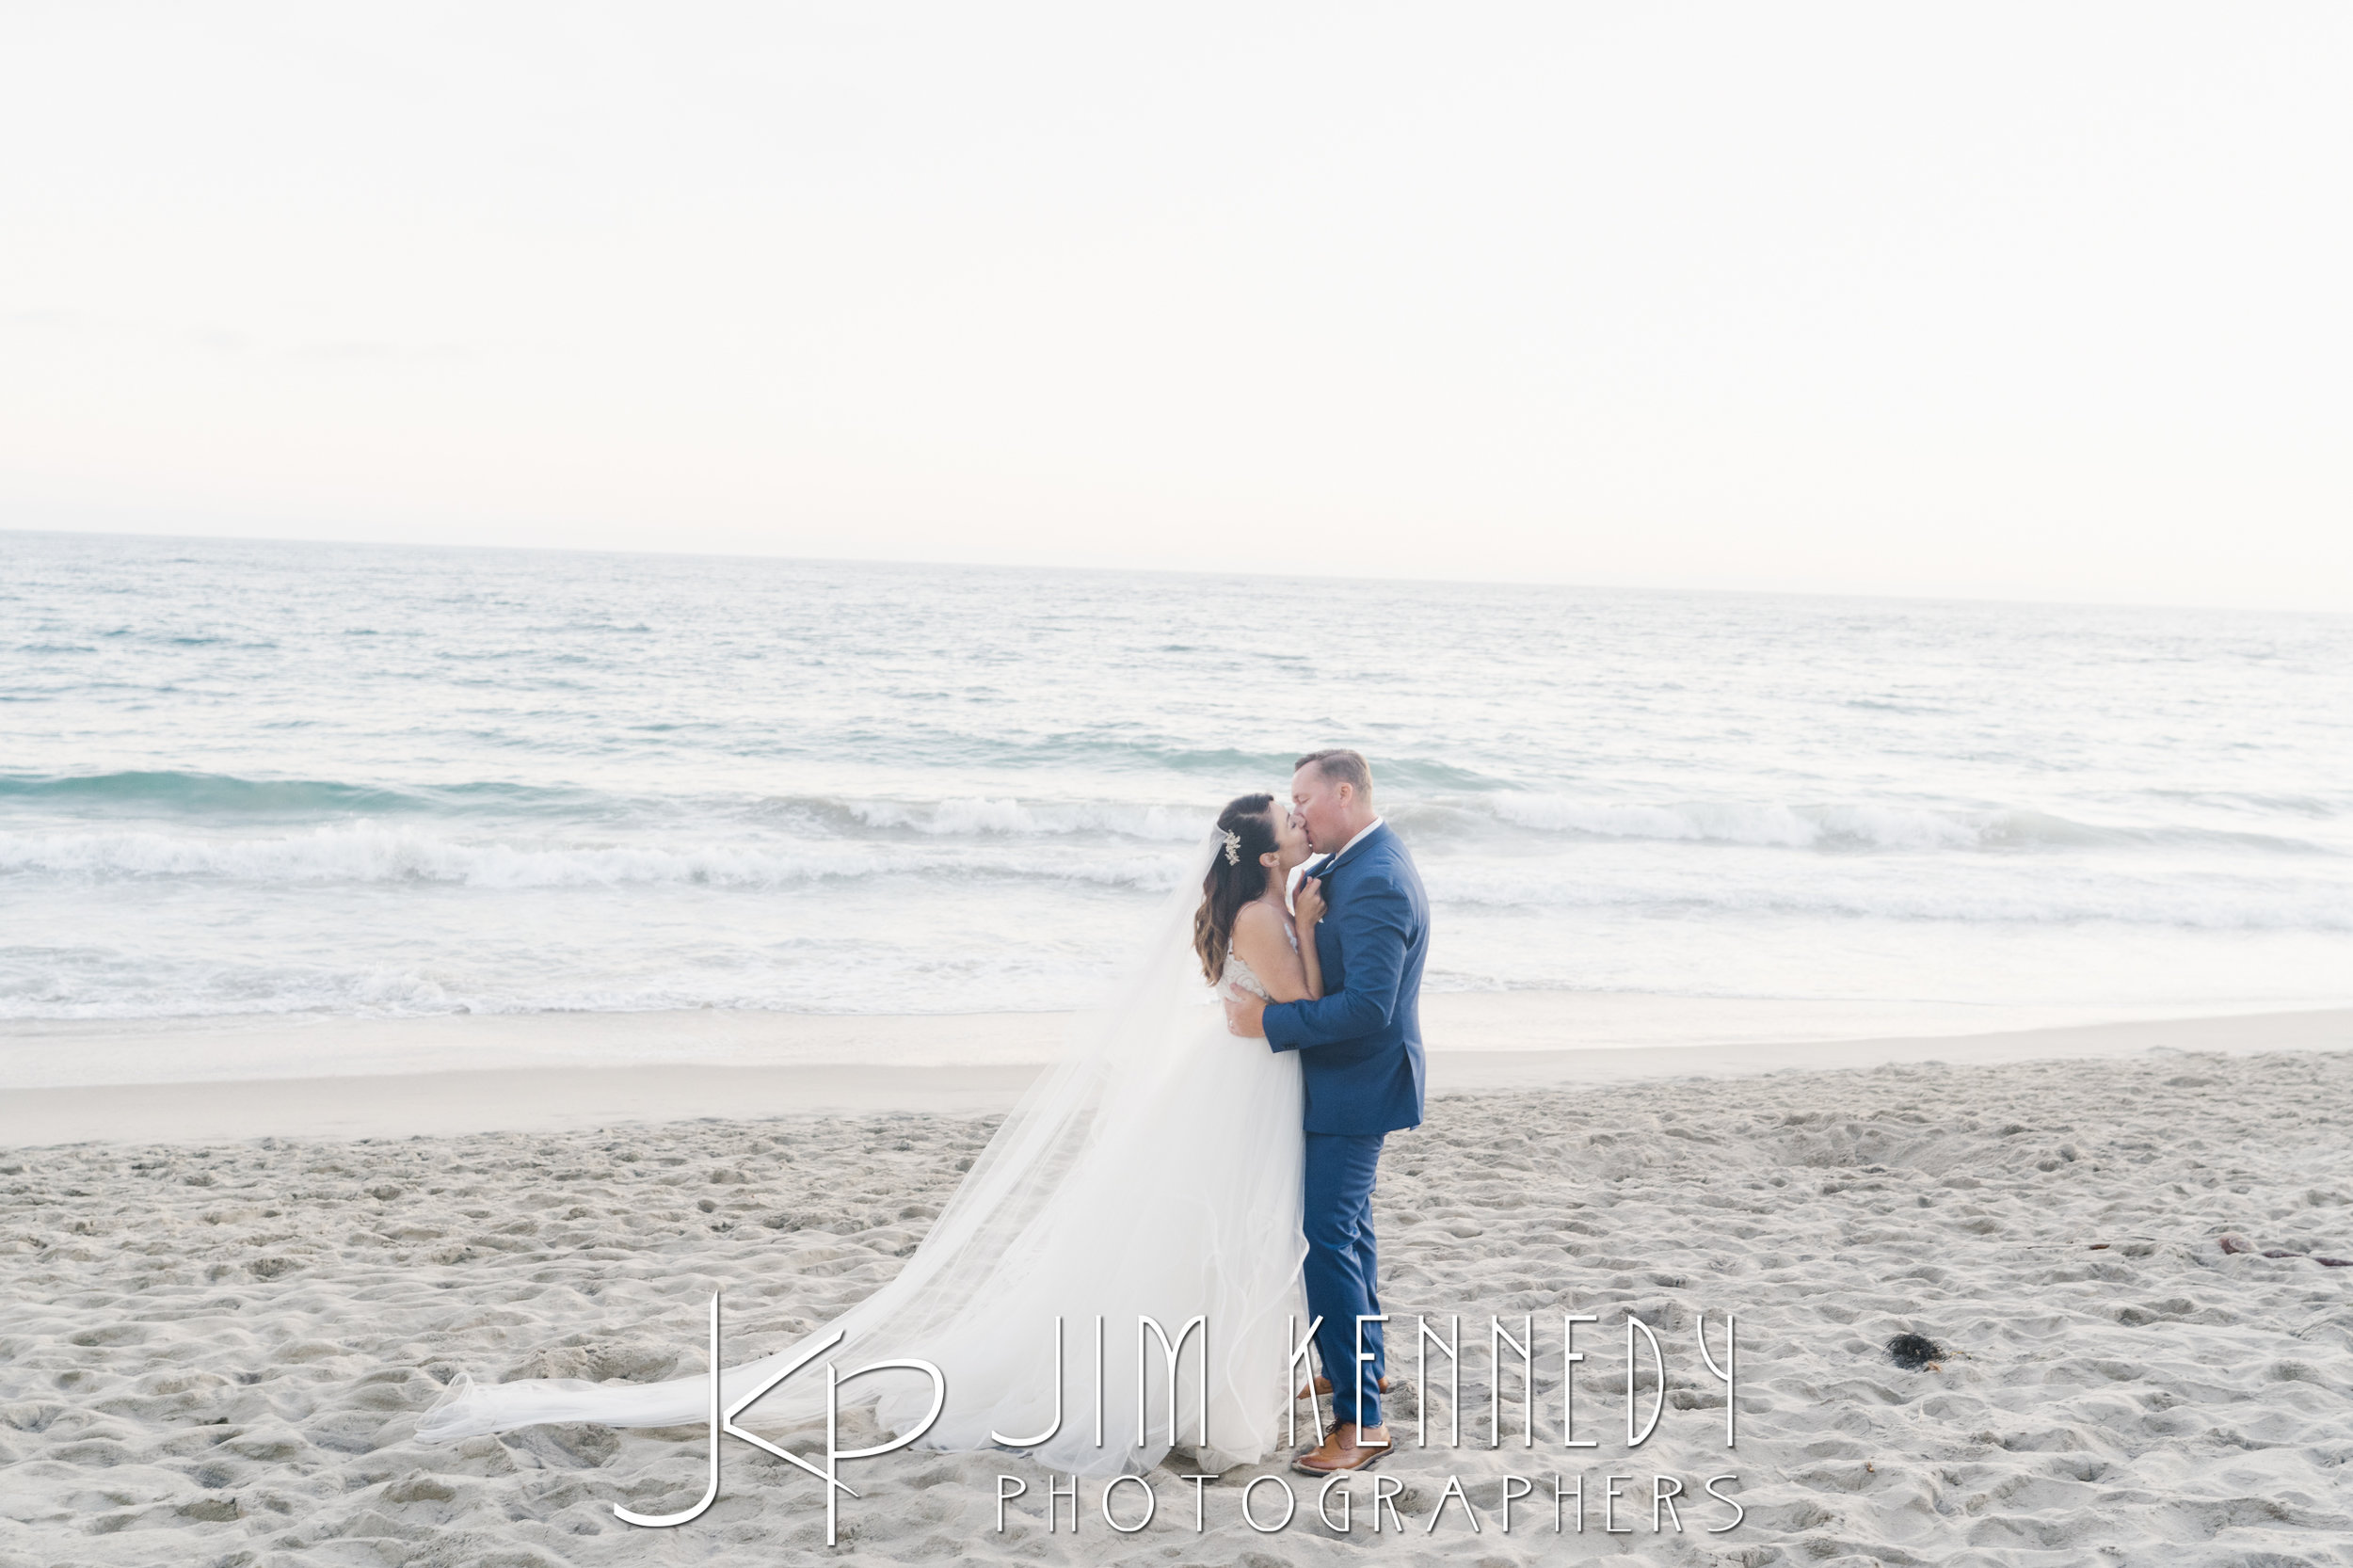 surf-and-sand-resort-wedding-erica-glenn_0207.JPG